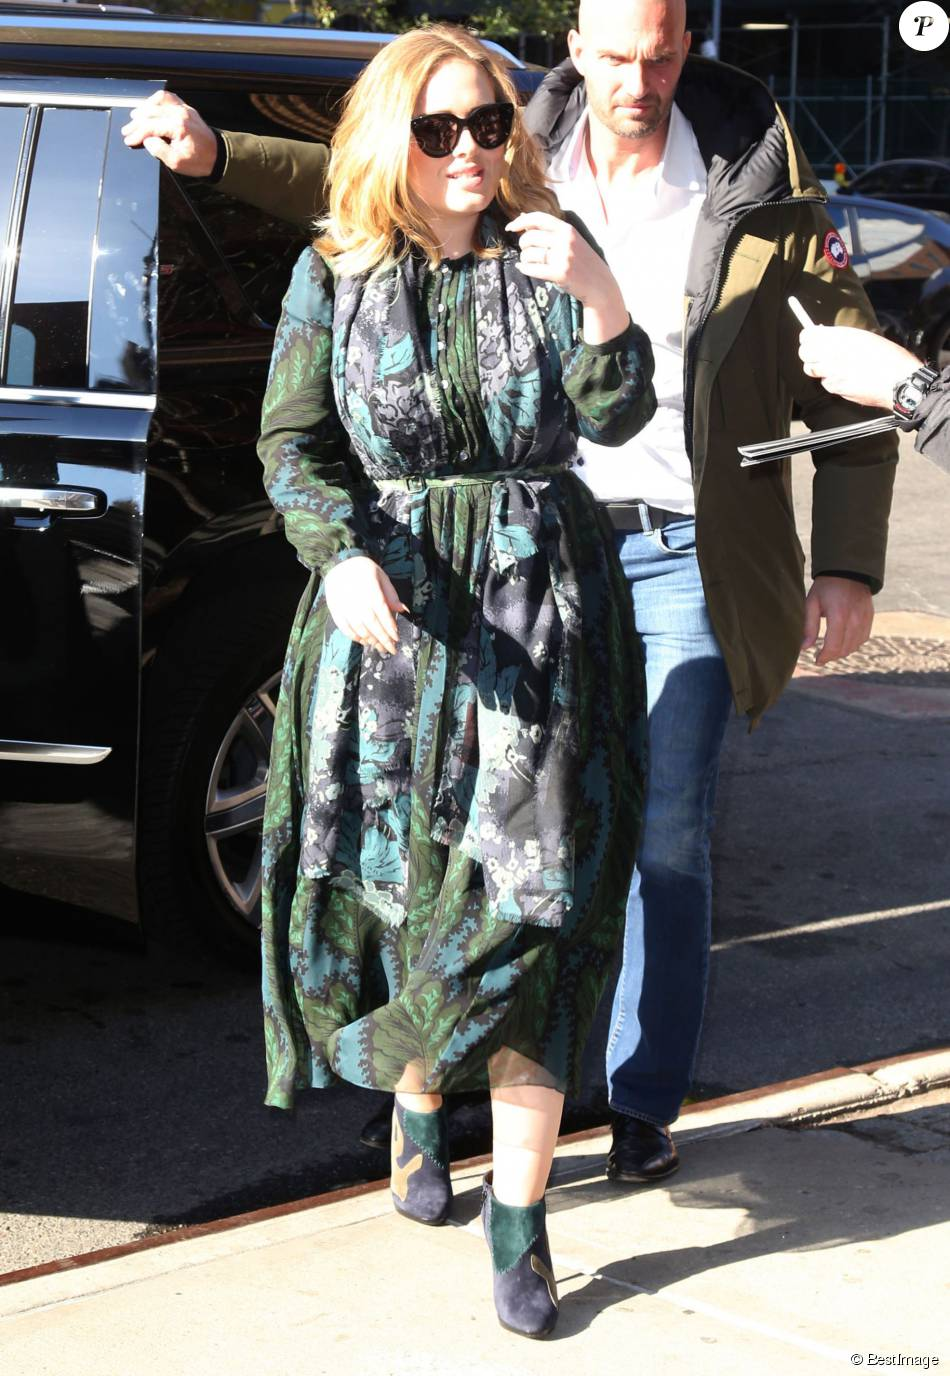 la chanteuse adele rencontre ses fans dans la rue new york le 25 novembre 2015 elles est. Black Bedroom Furniture Sets. Home Design Ideas